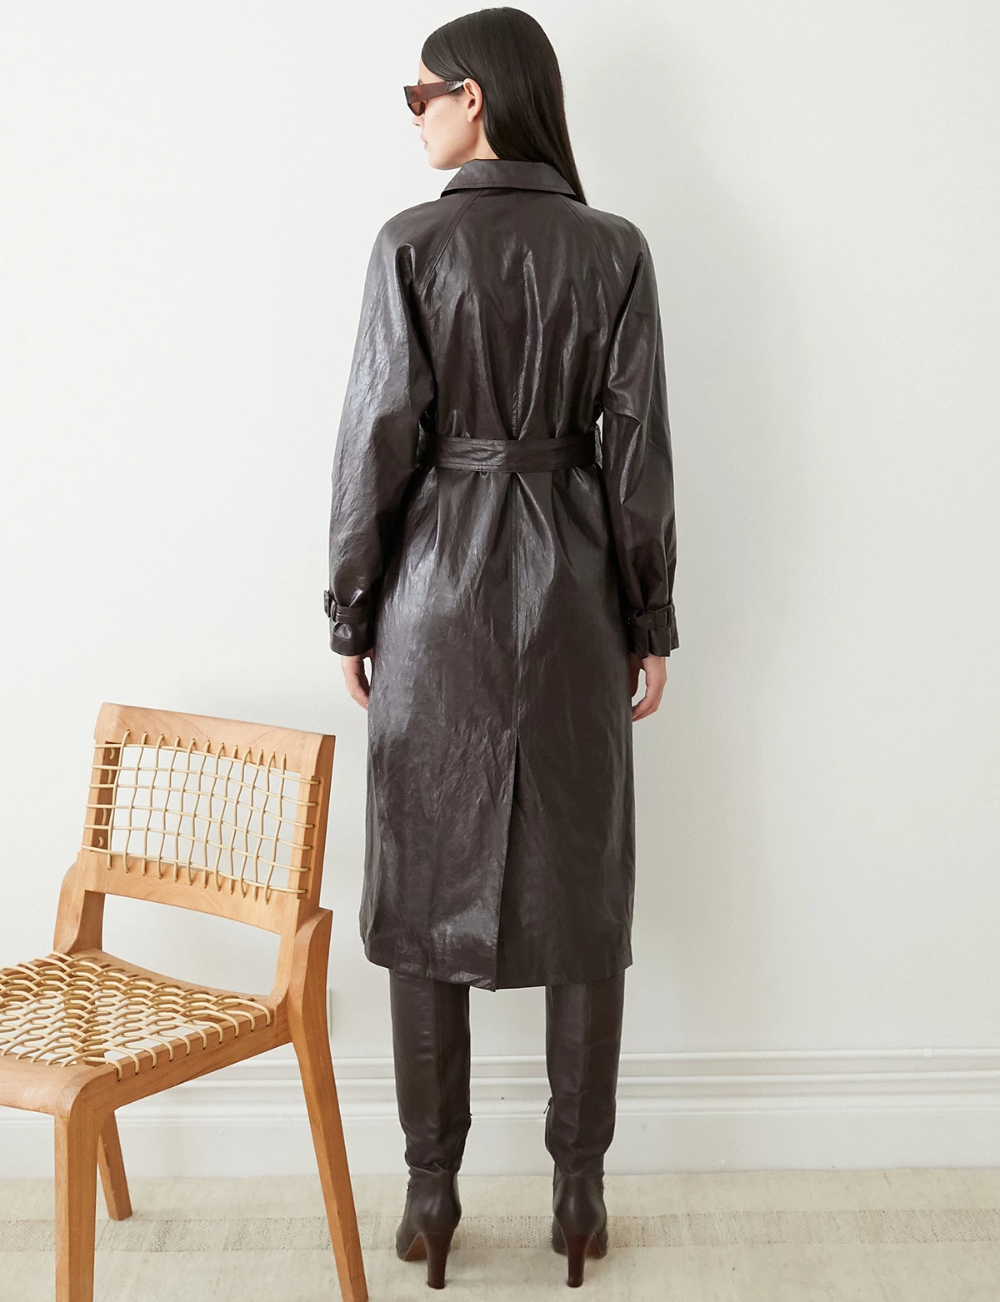 Crackled Leather Trench Leather trench coat, Leather, Trench